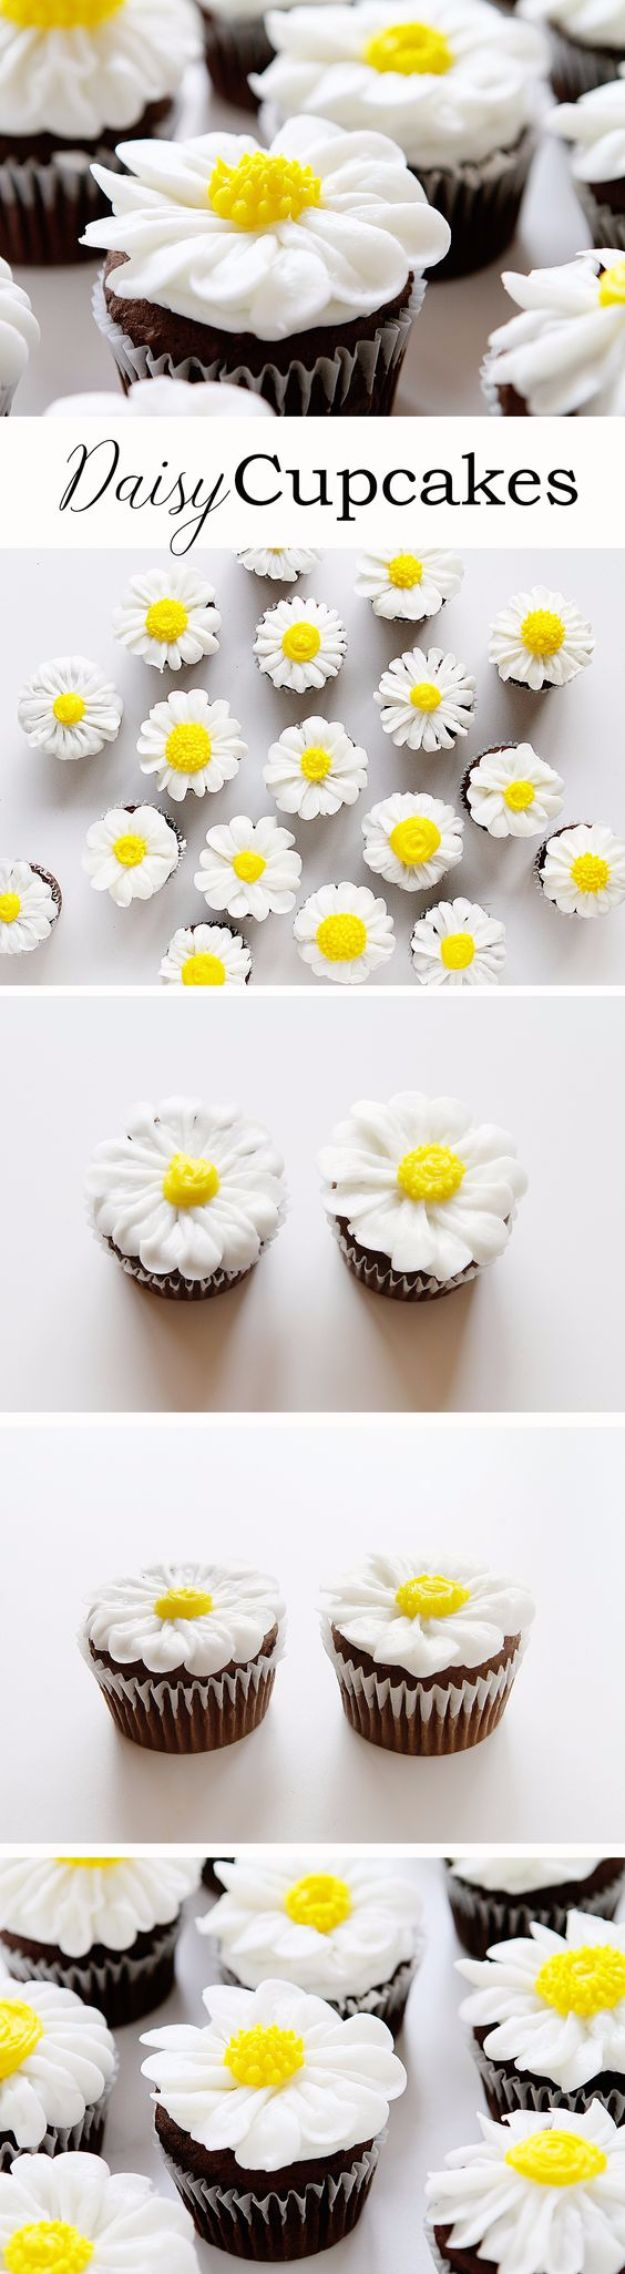 Cool Cupcake Decorating Ideas - Pipe a Buttercream Daisy - Easy Ways To Decorate Cute, Adorable Cupcakes - Quick Recipes and Simple Decorating Tips With Icing, Candy, Chocolate, Buttercream Frosting and Fruit kids birthday party ideas cake